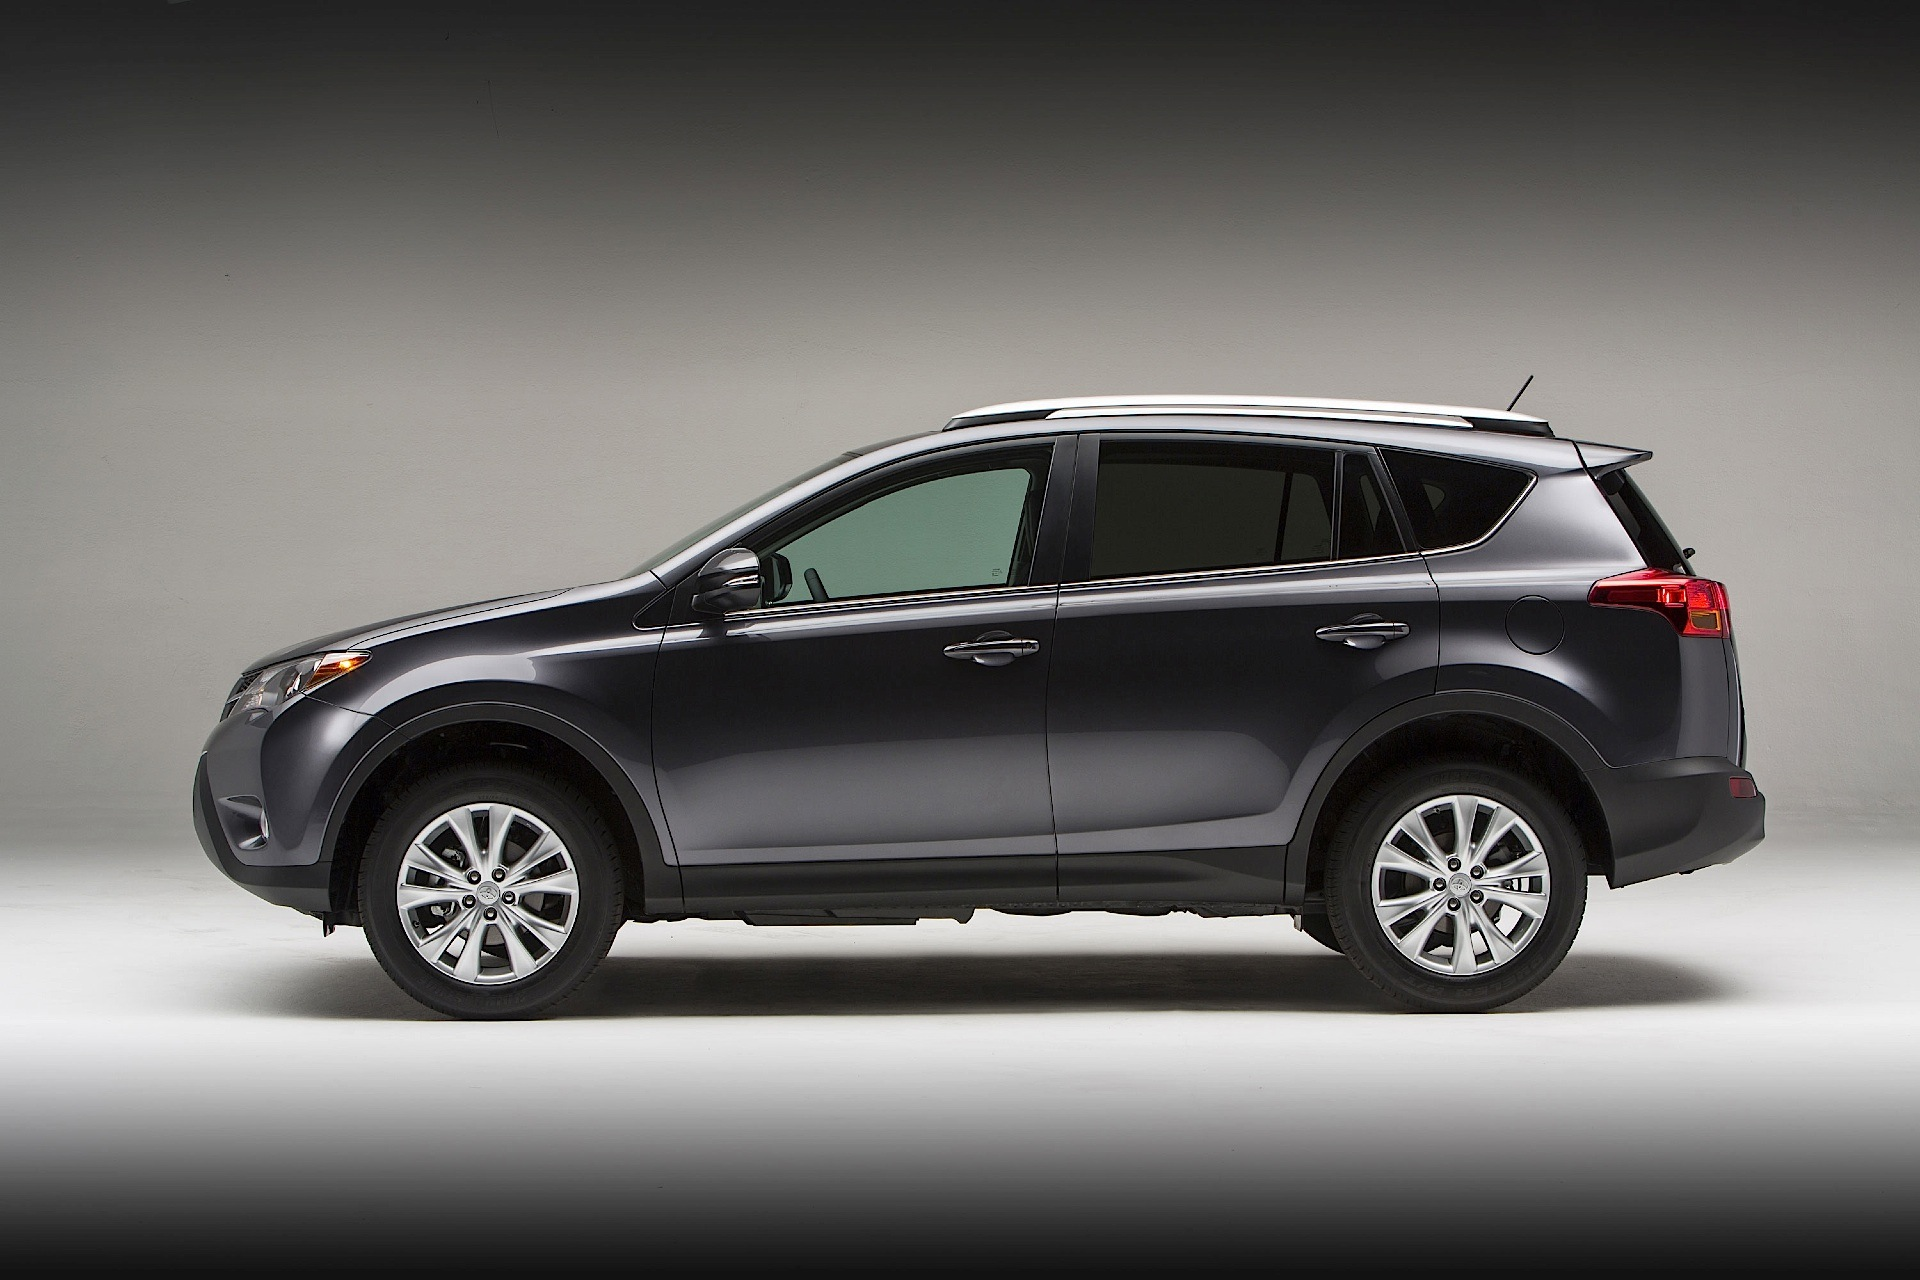 toyota rav4 5 doors specs 2013 2014 2015 autoevolution. Black Bedroom Furniture Sets. Home Design Ideas